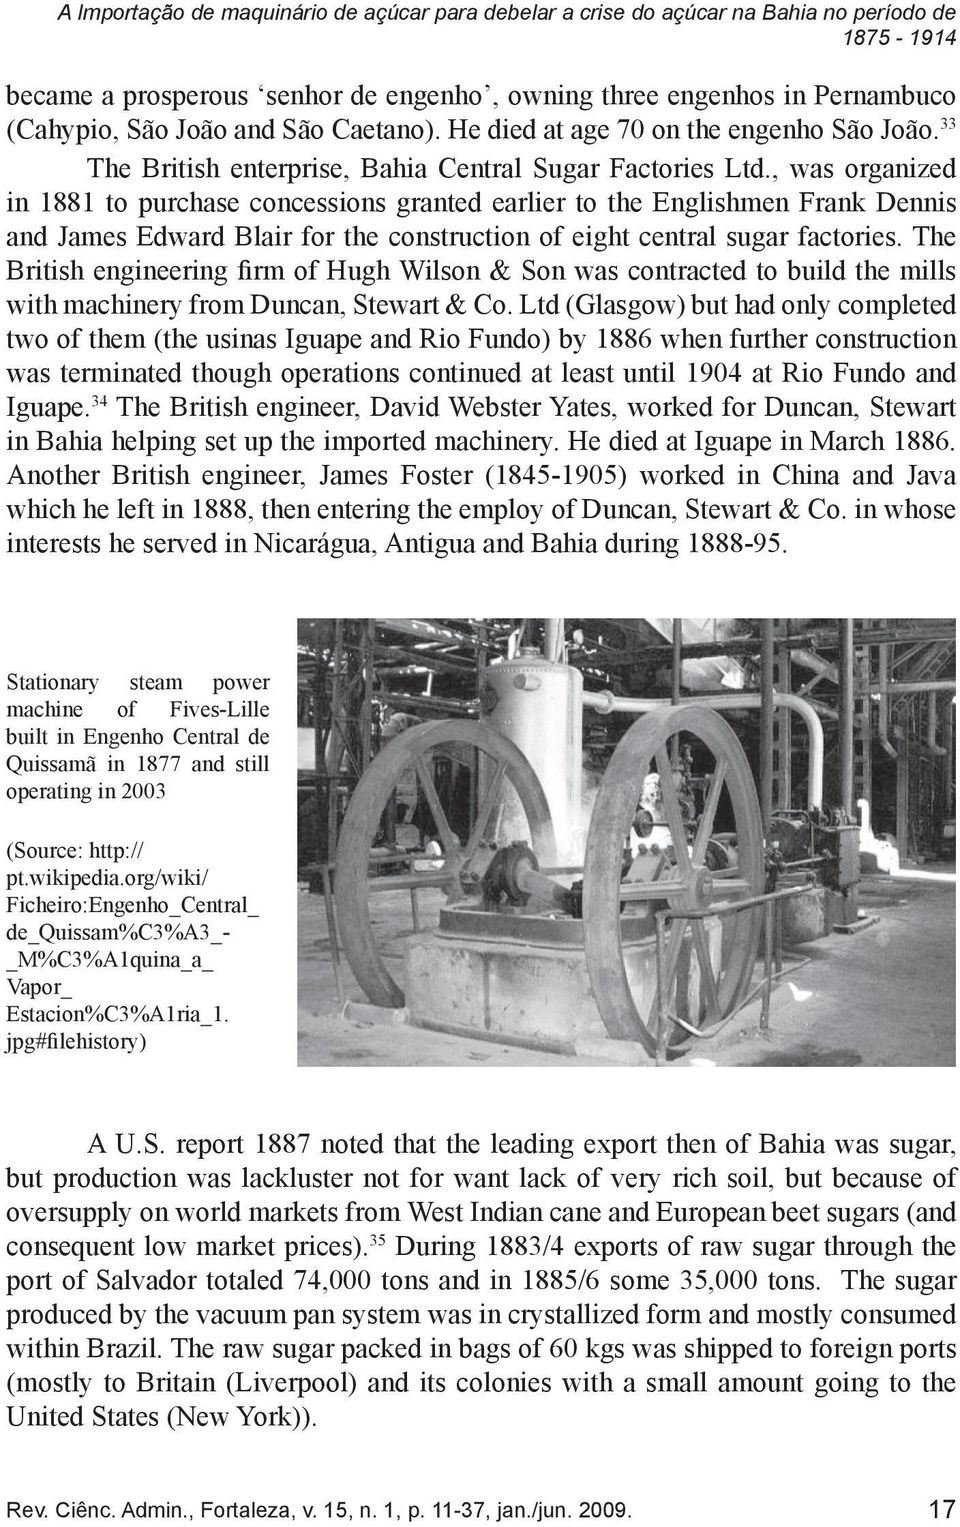 , was organized in 1881 to purchase concessions granted earlier to the Englishmen Frank Dennis and James Edward Blair for the construction of eight central sugar factories.